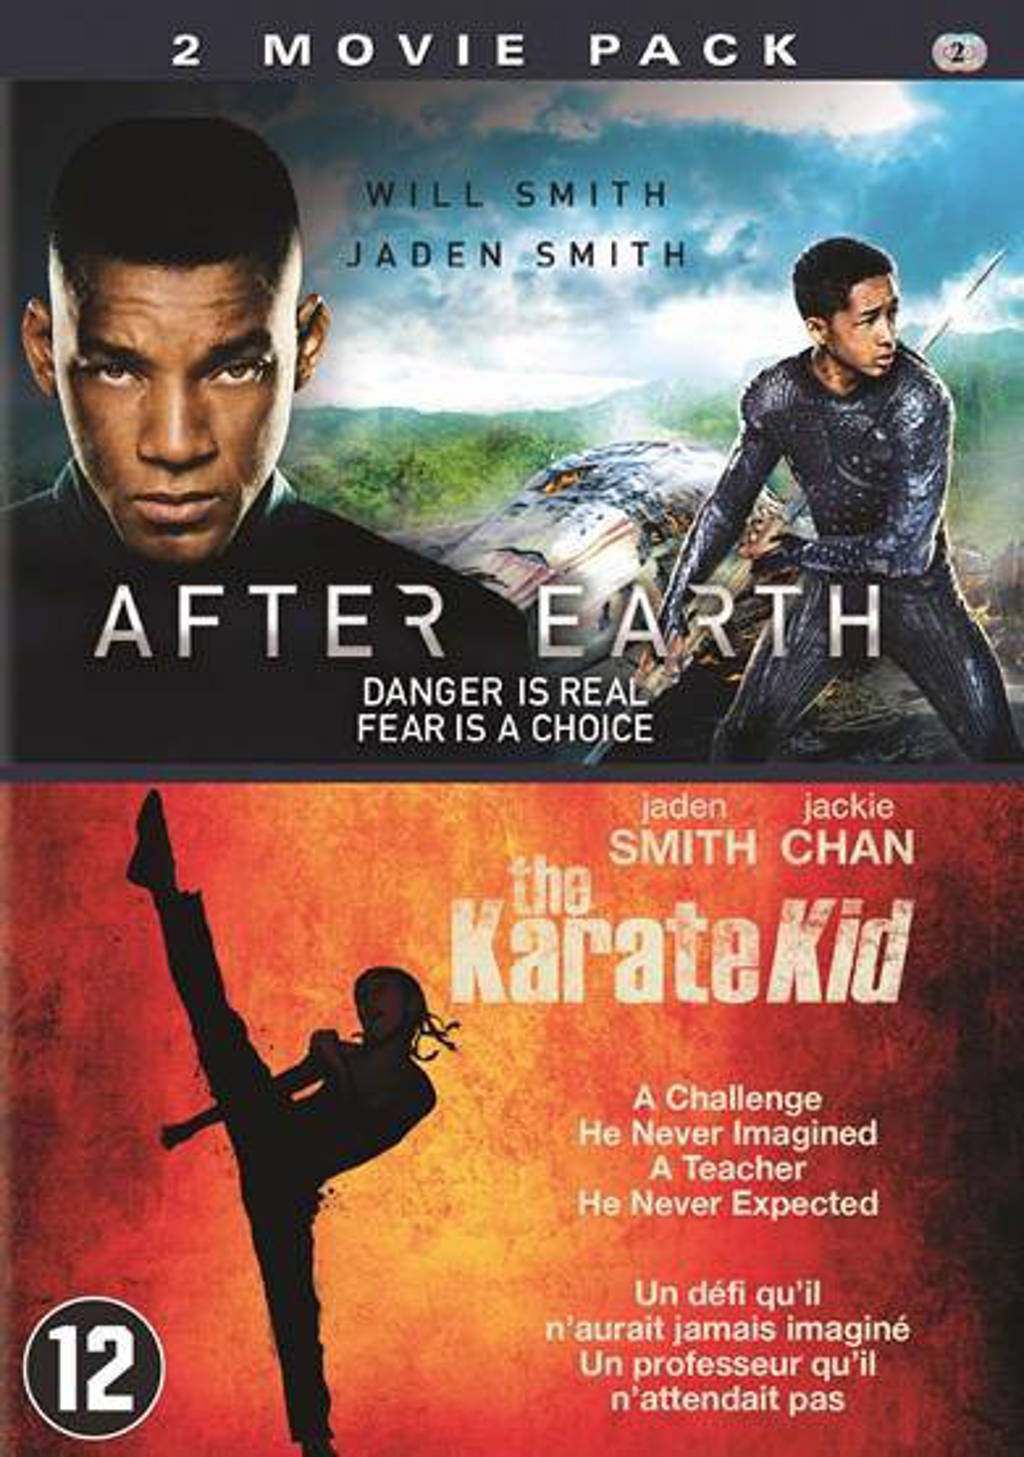 After earth/Karate kid (DVD)